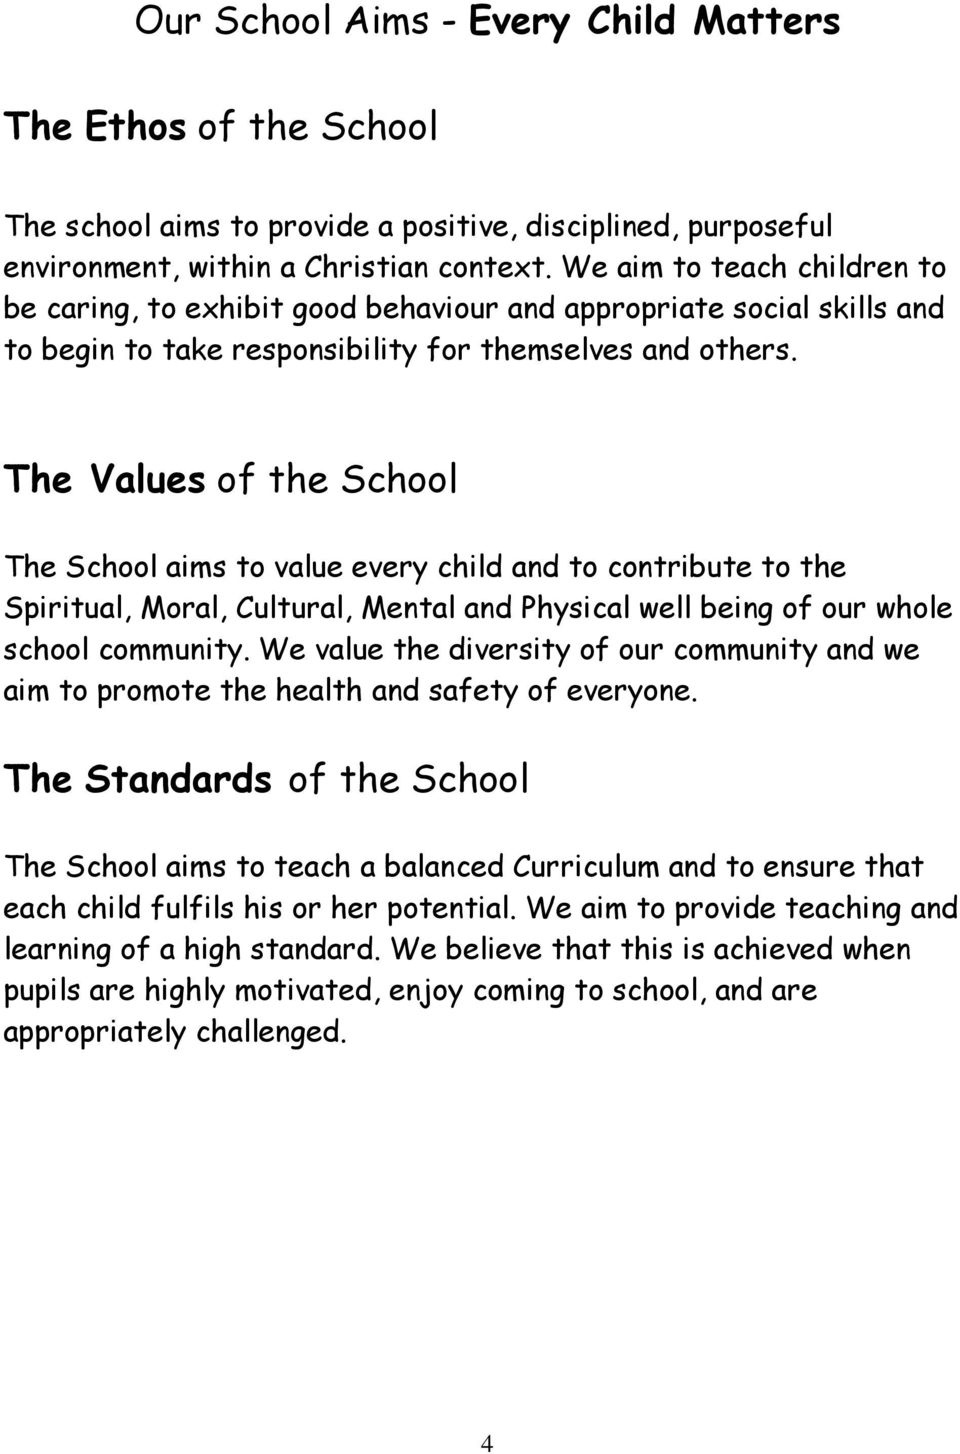 The Values of the School The School aims to value every child and to contribute to the Spiritual, Moral, Cultural, Mental and Physical well being of our whole school community.